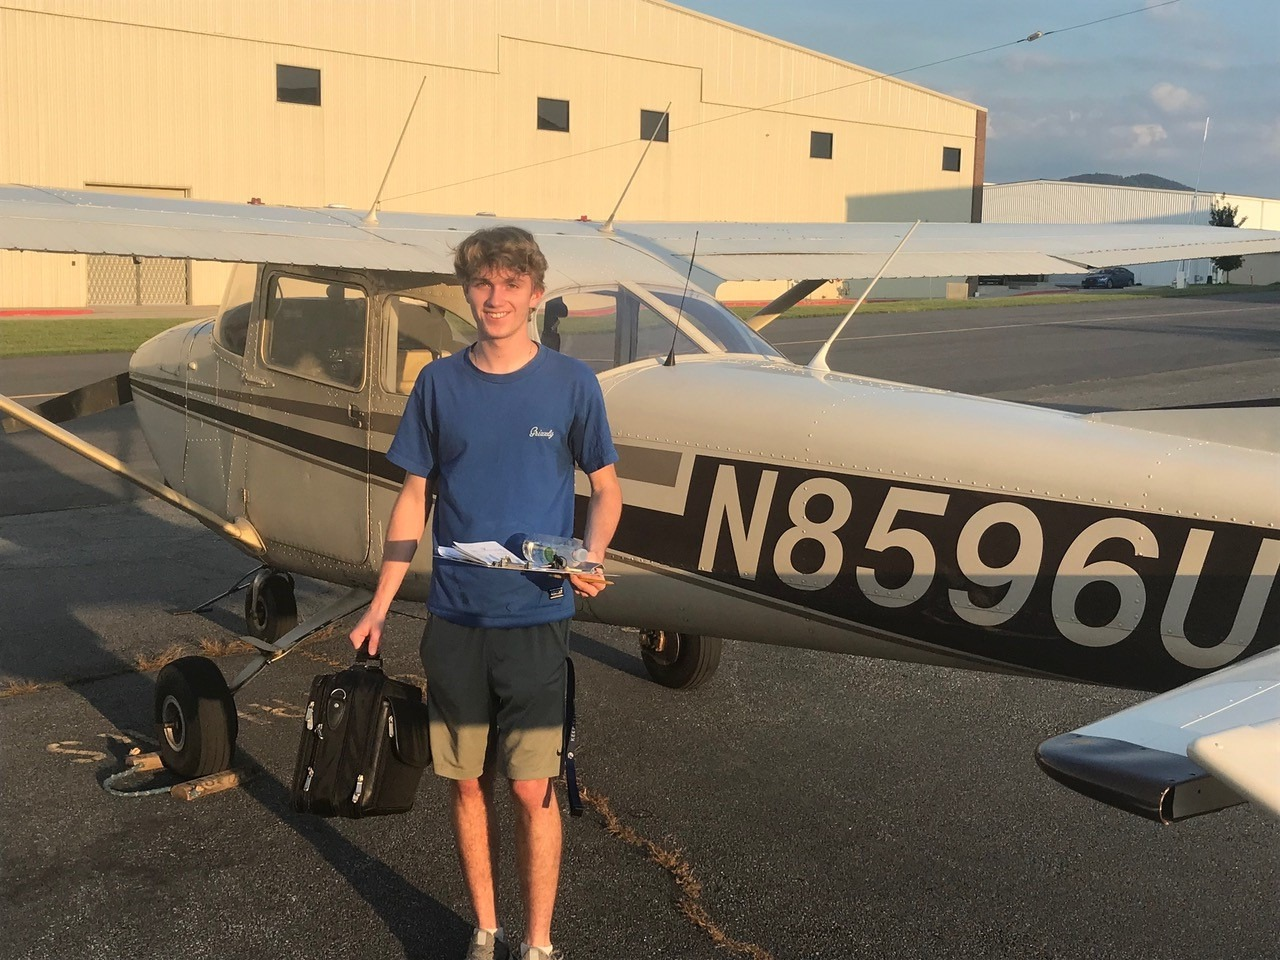 Student's first solo cross-country!